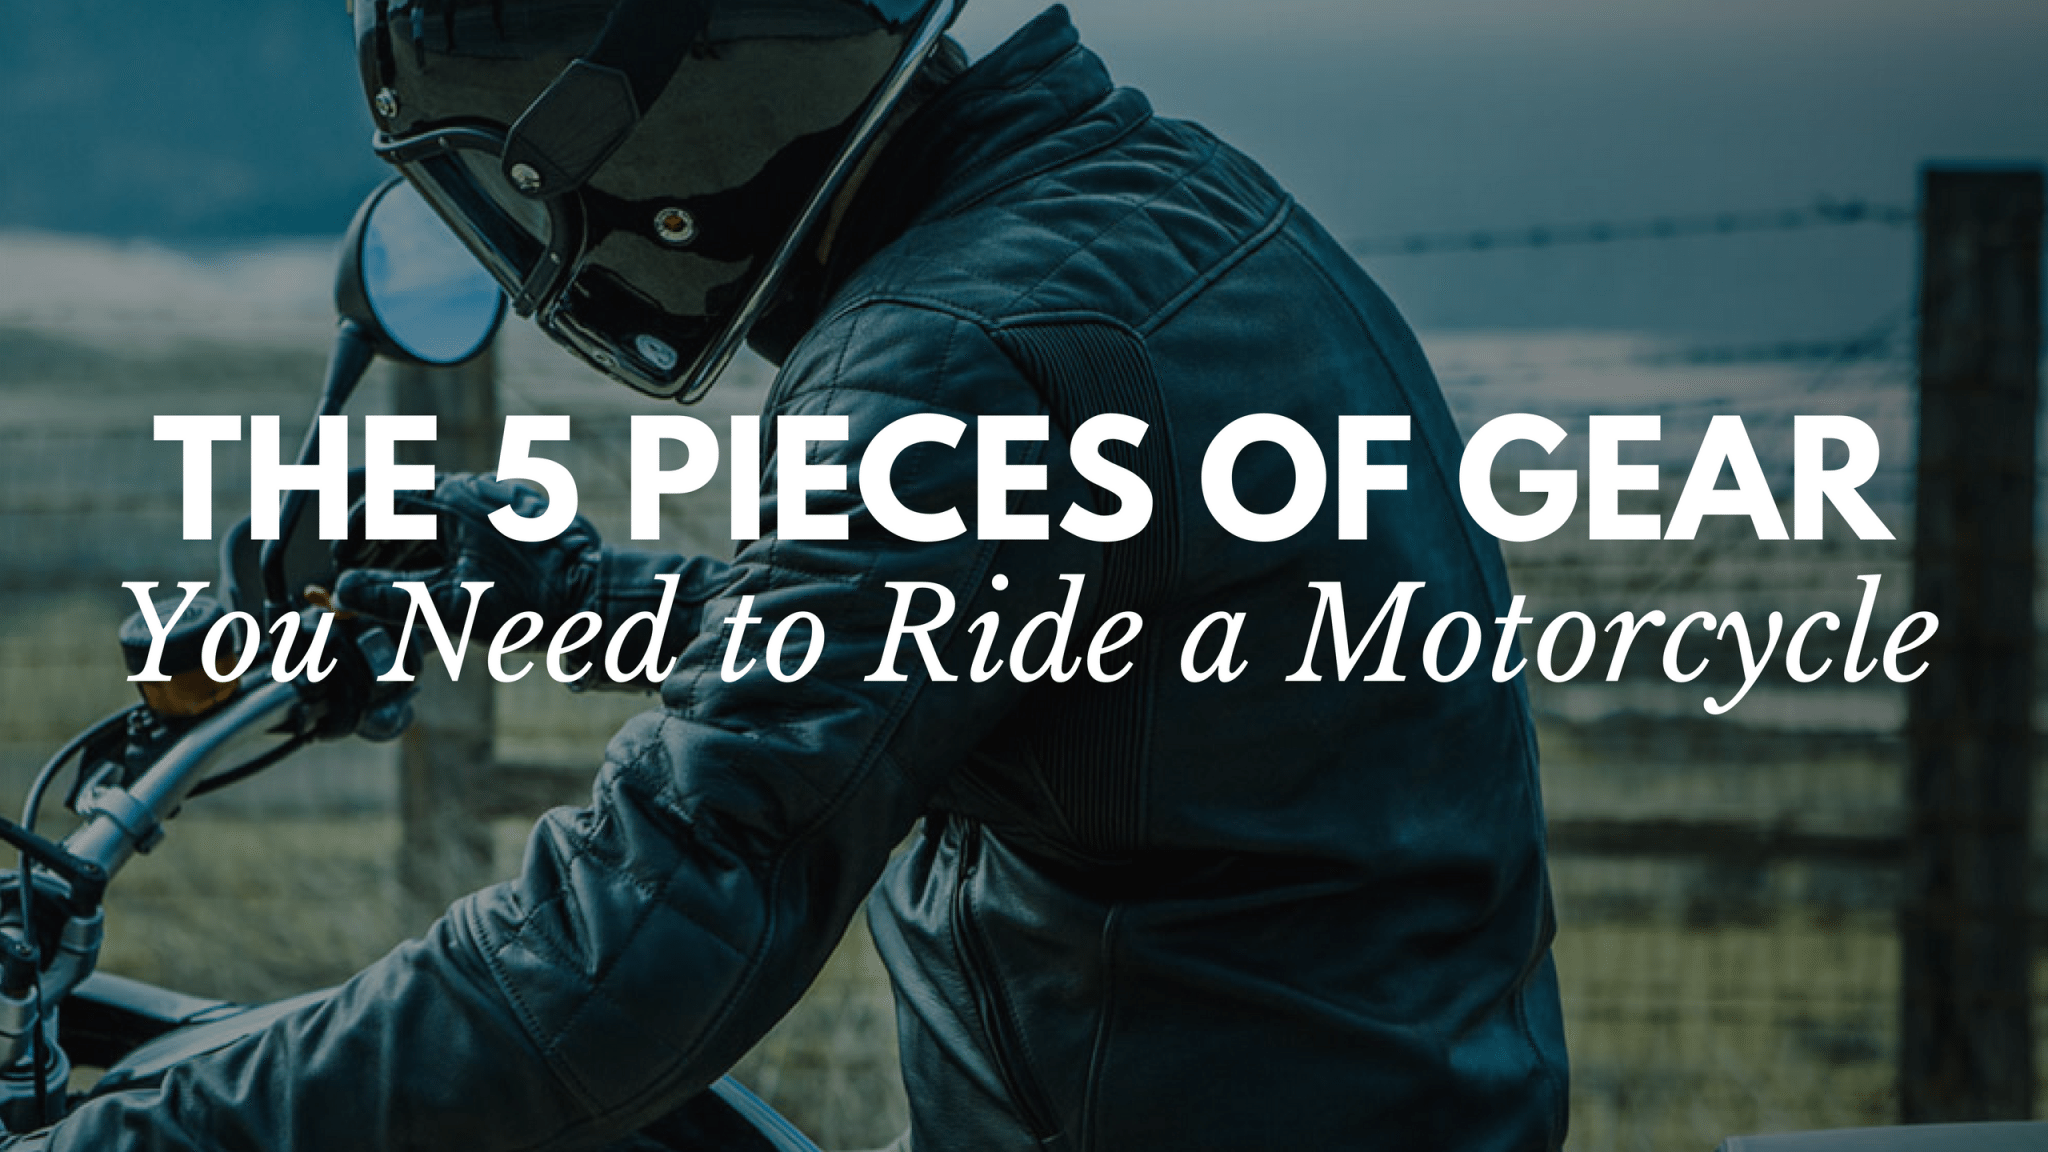 The 5 Pieces of Gear You Need to Ride a Motorcycle